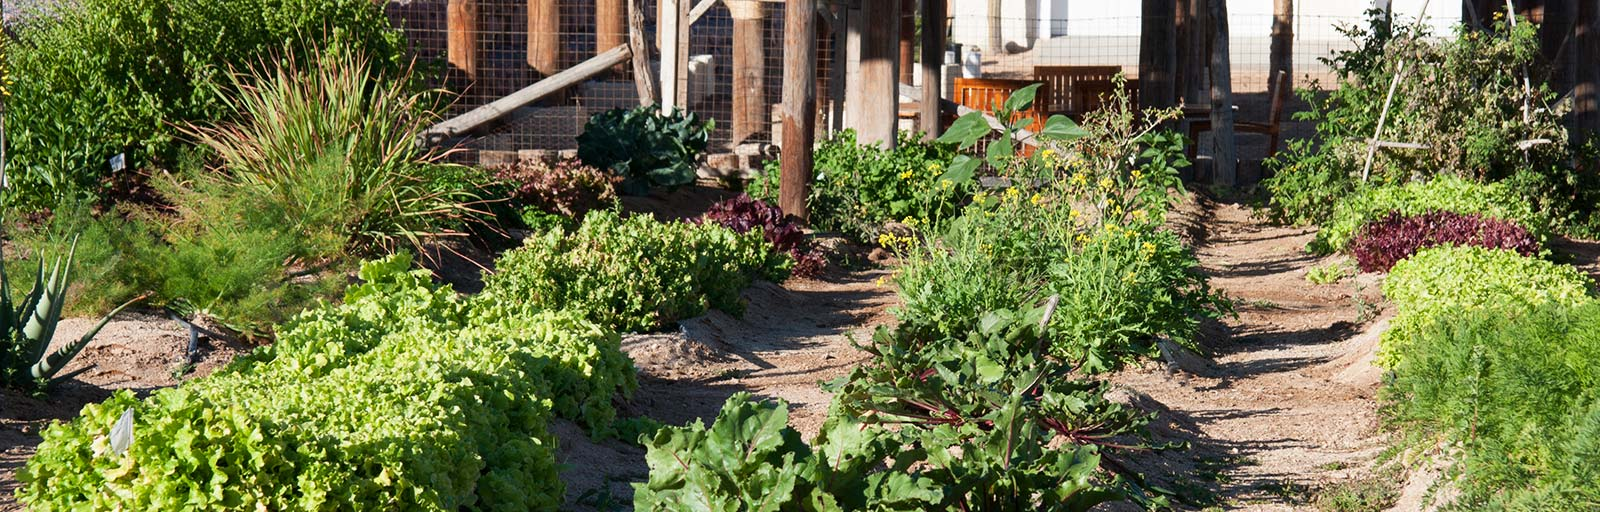 Gardens at Yoga Retreat Mexico: Organic Fruit, Vegetables, and Herbs